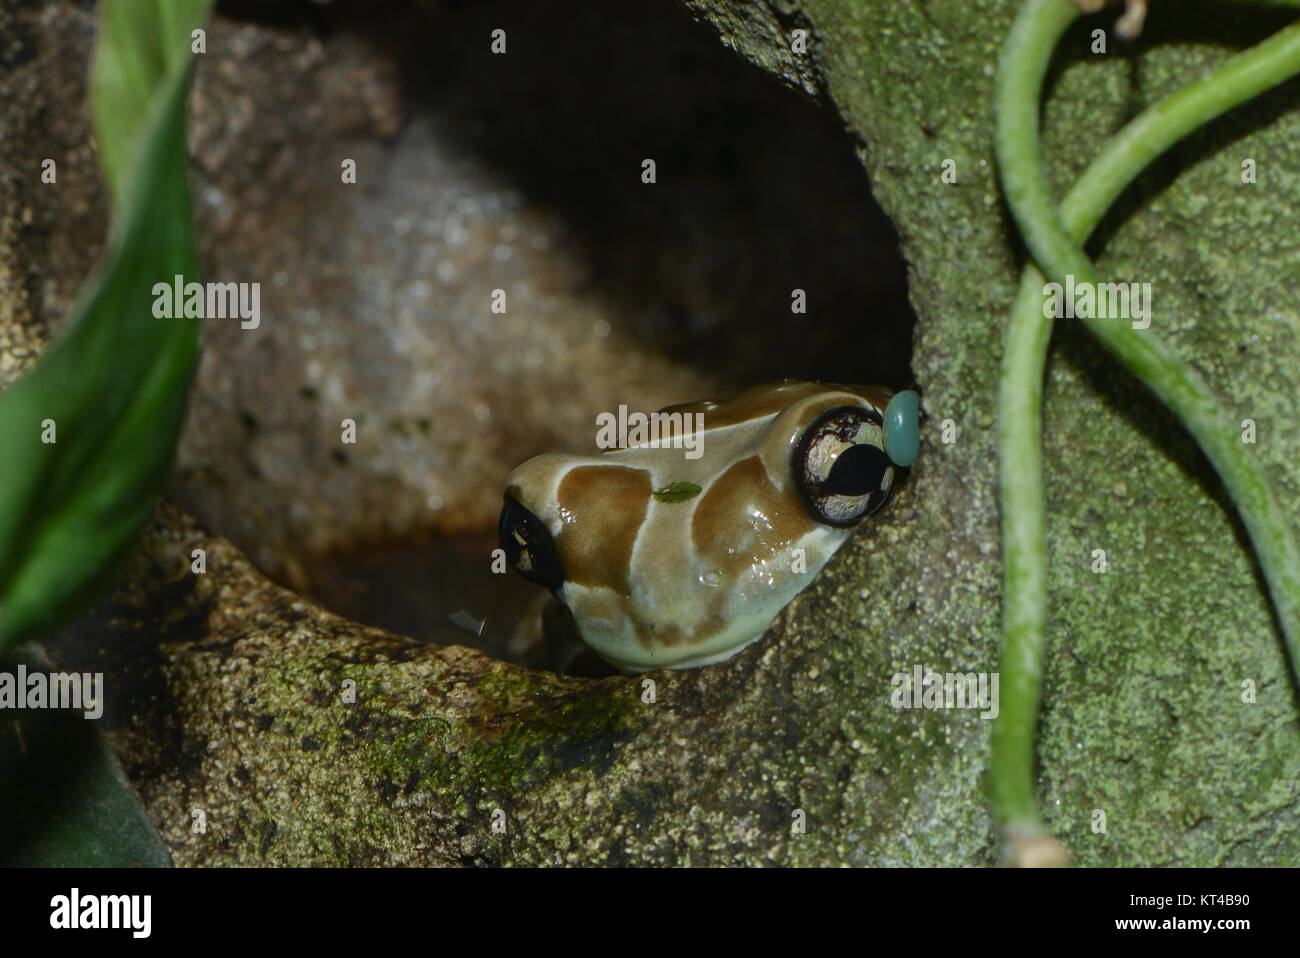 close up of a poison dart frog - Stock Image